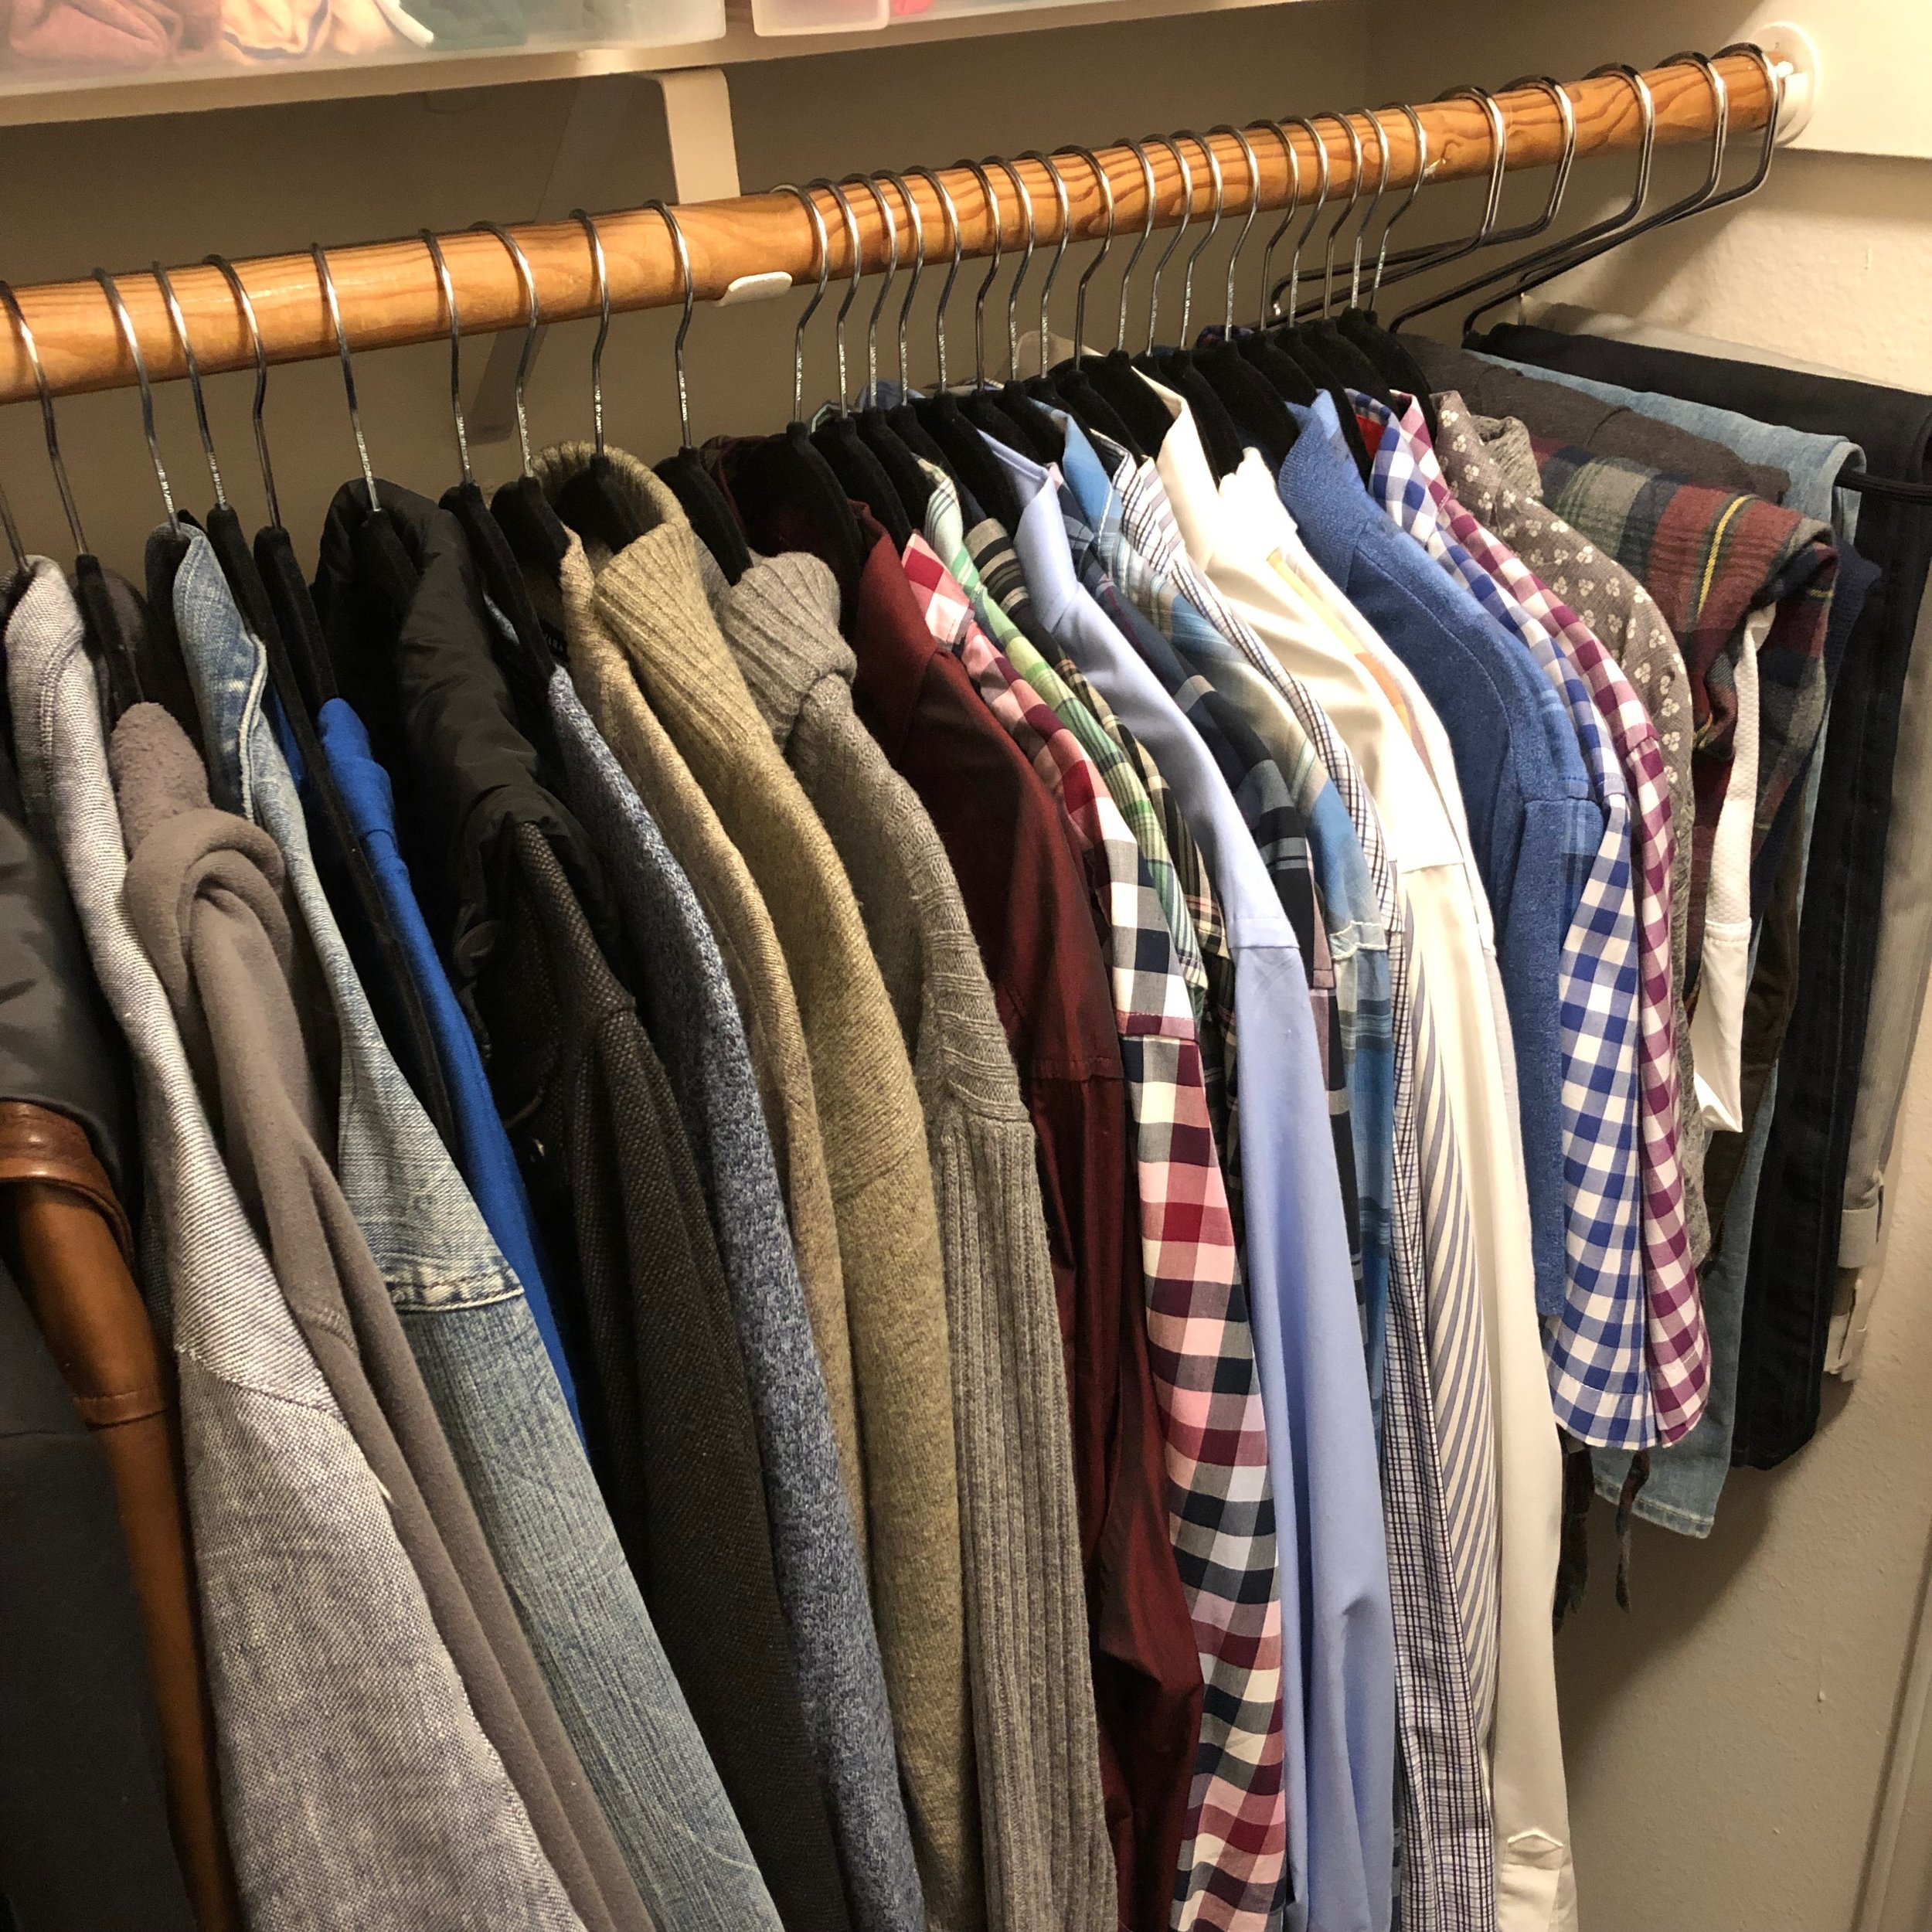 When hanging your clothes, be sure to go from longest on the left to shortest on the right. This is a tip from Marie Kondo & yes, it does spark joy!